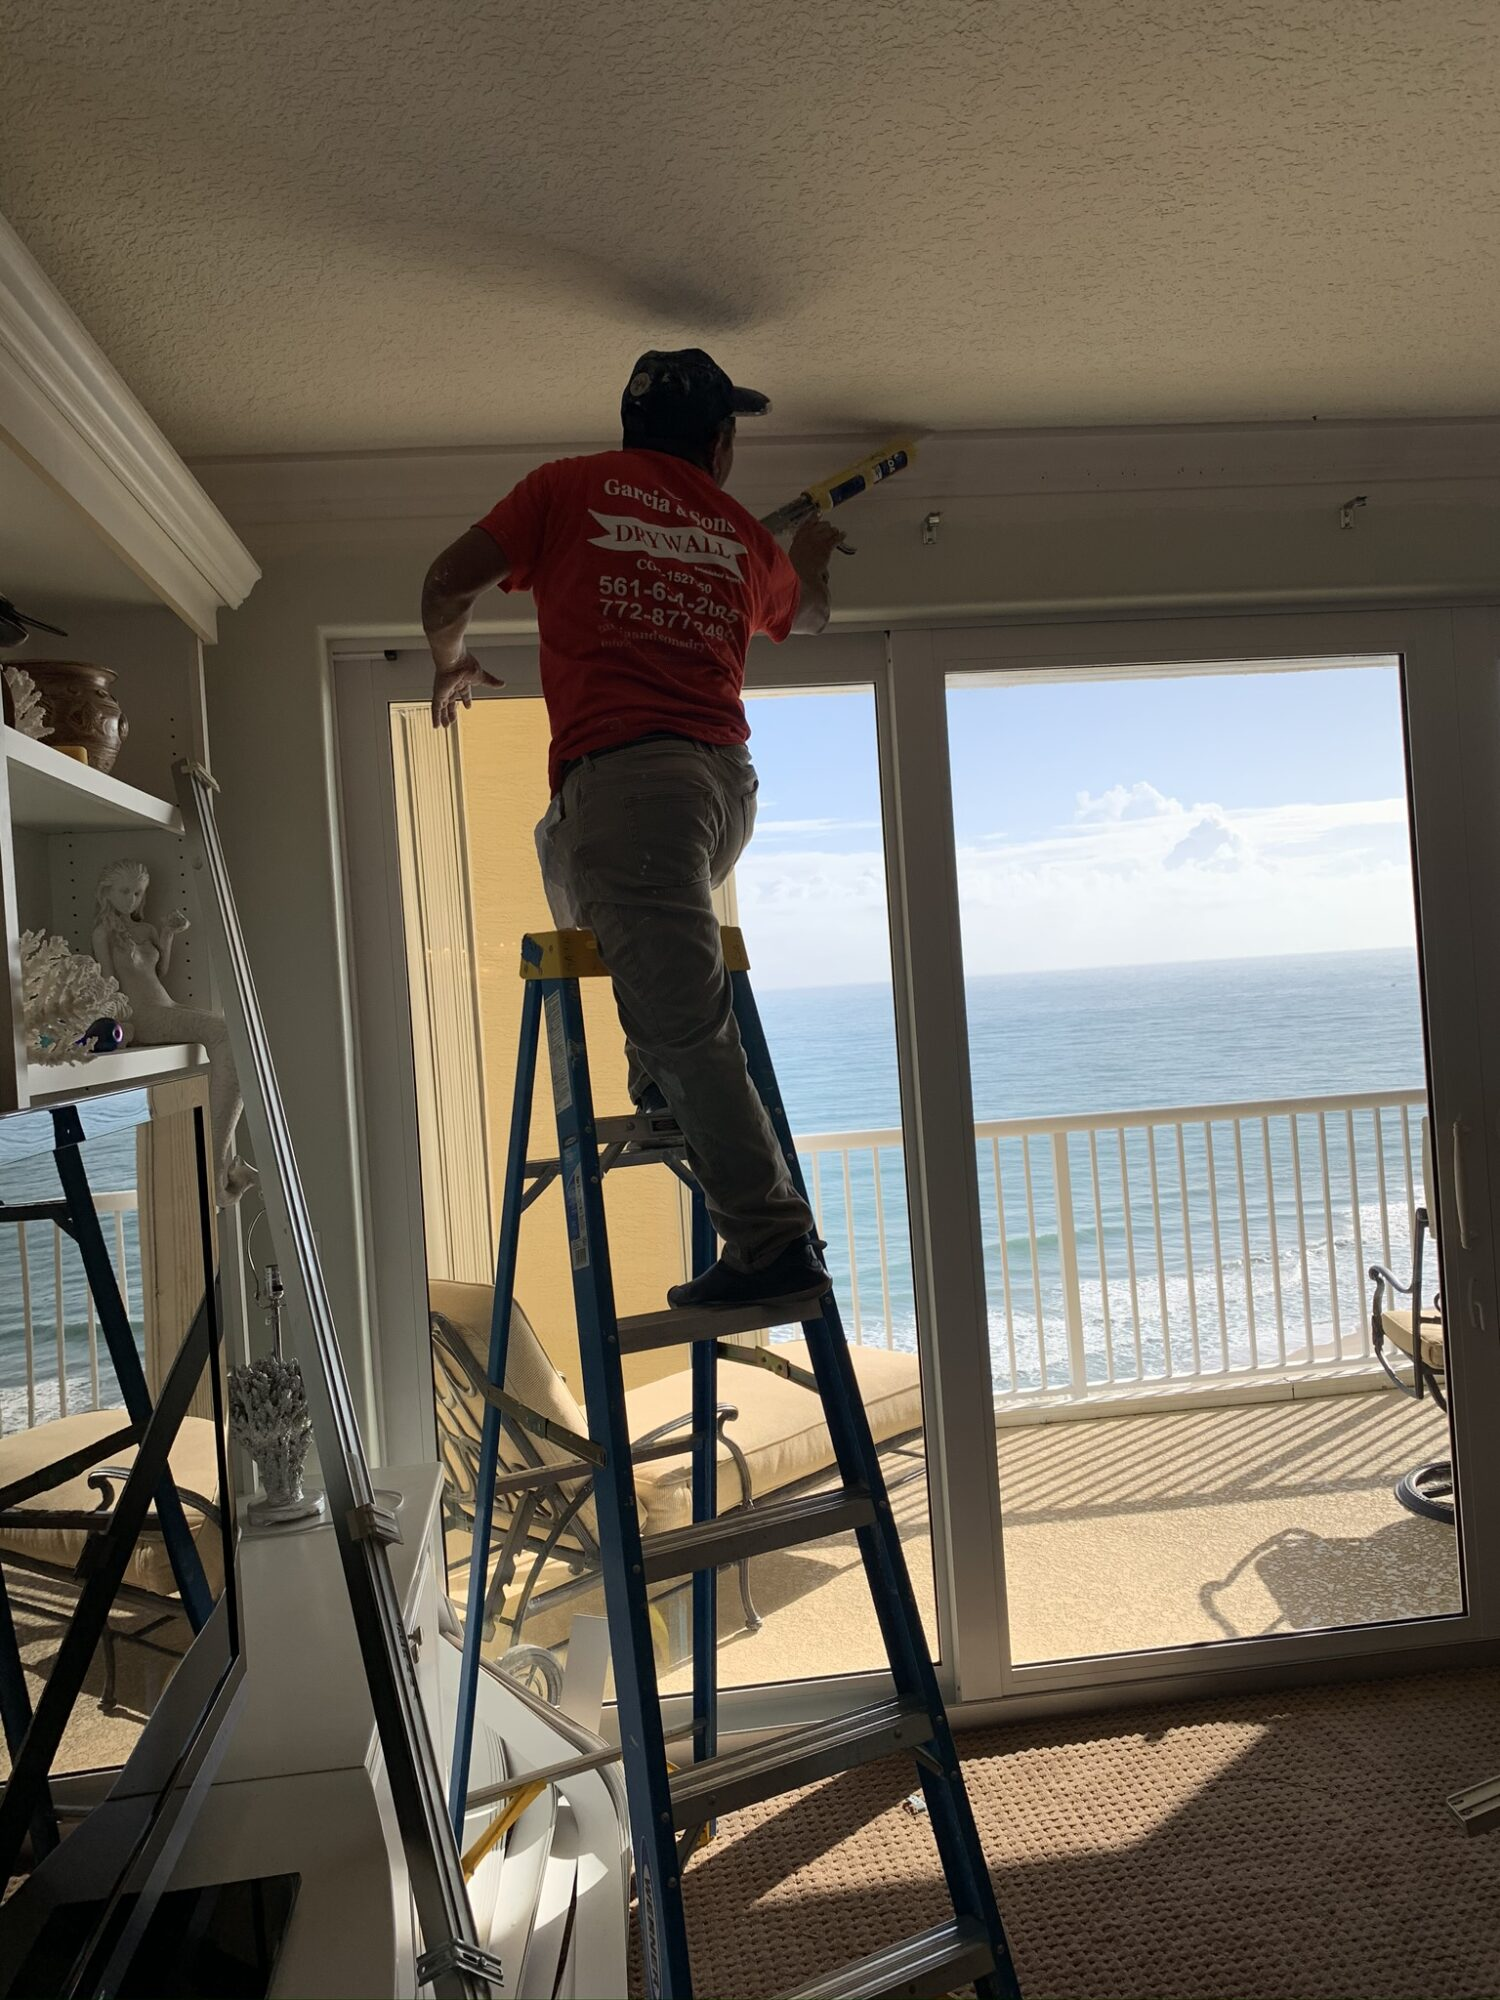 Garcia and sons construction remodeling